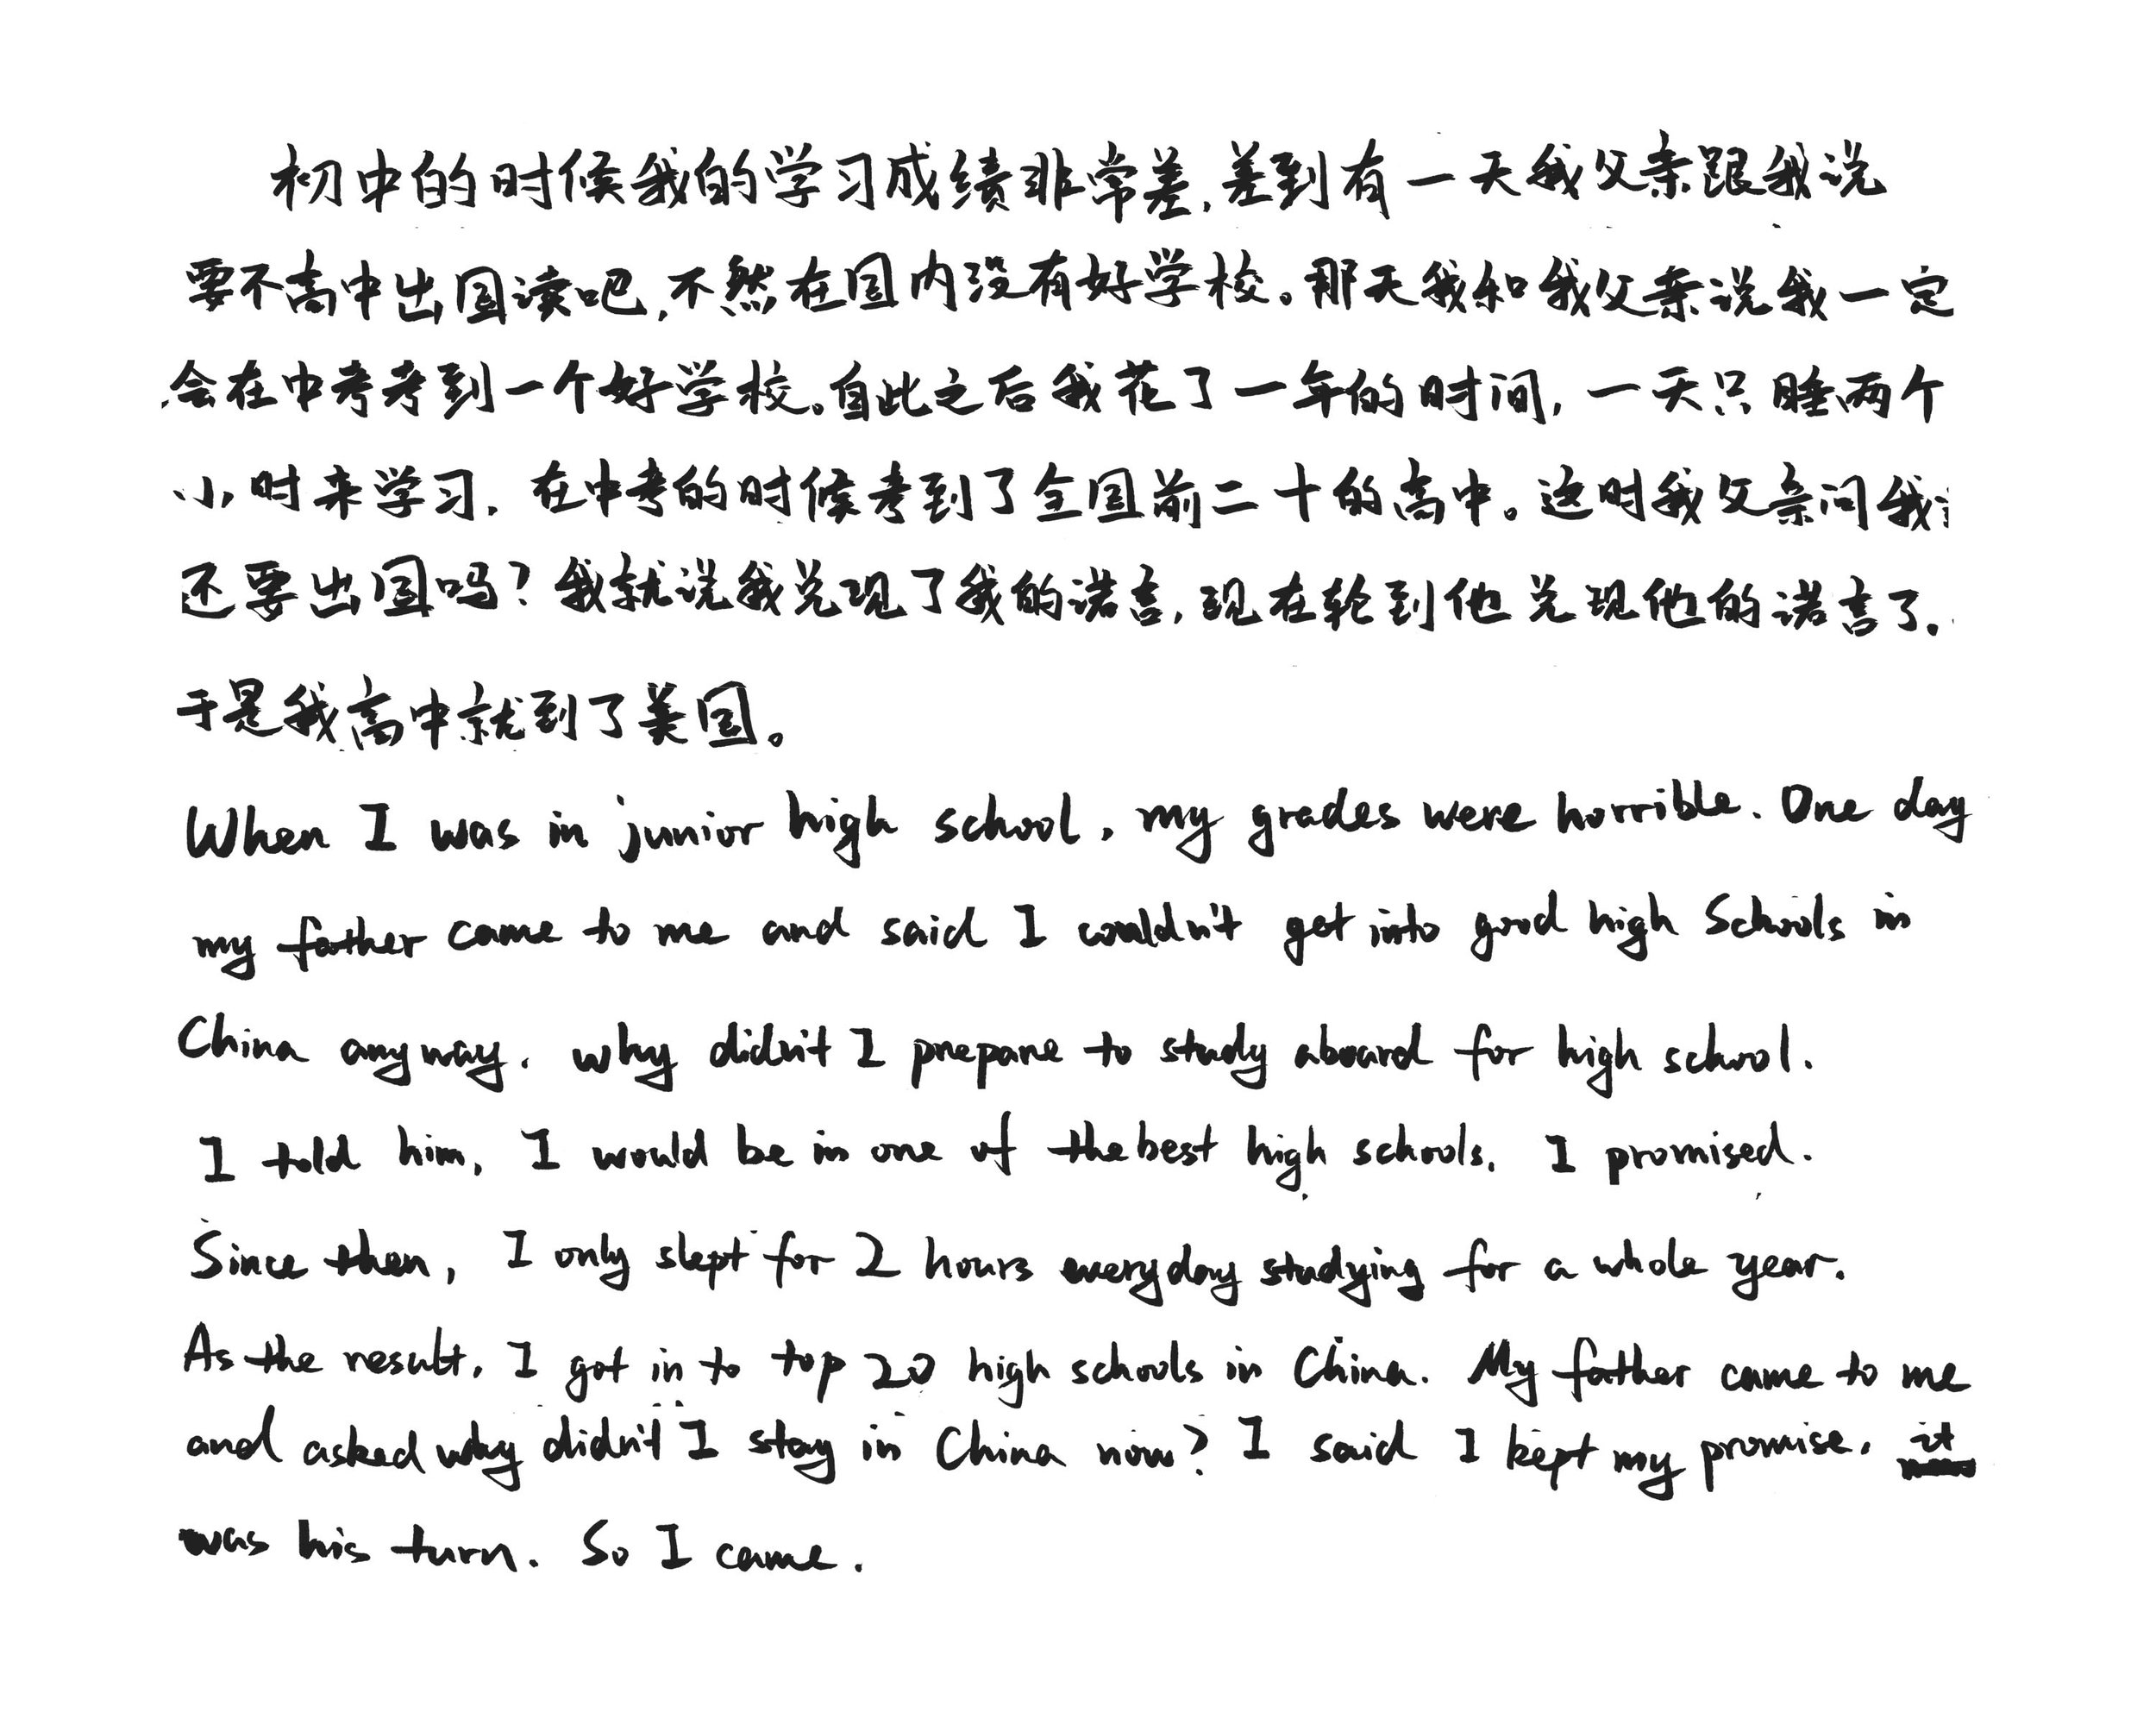 Geng_ShunxingSuHandwriting.jpg